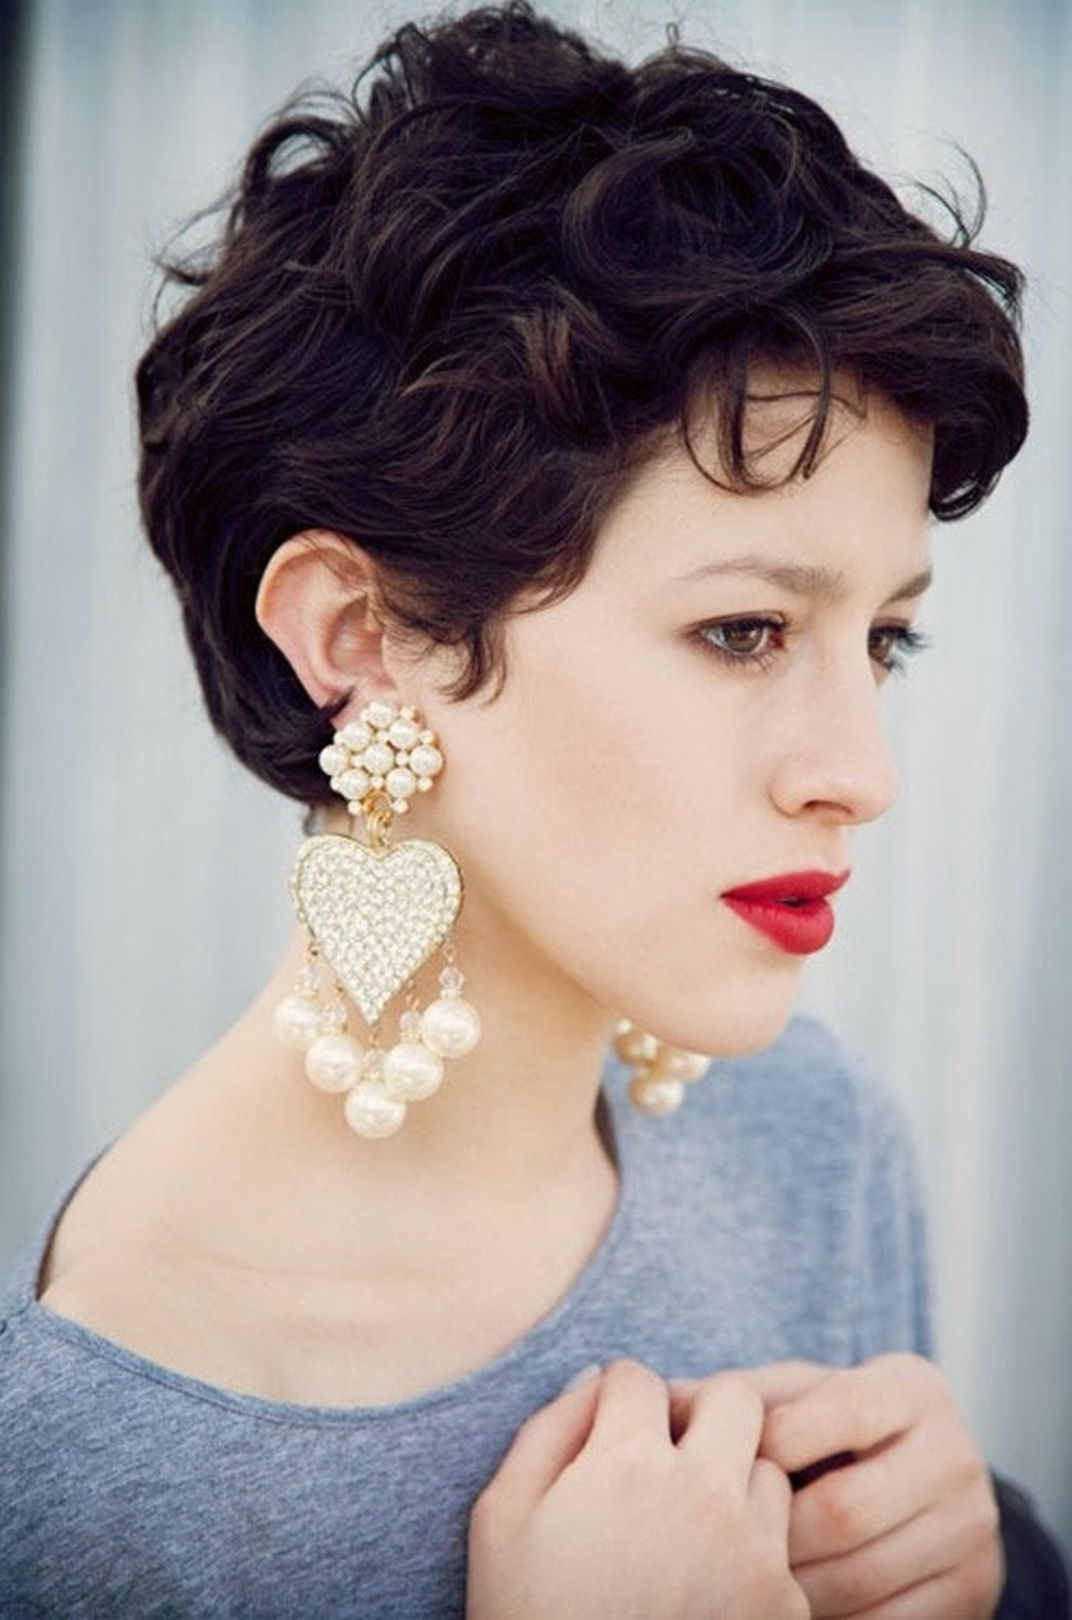 Pixie Haircut Wavy Hair Pixie Hairstyles For Thick Hair Women Intended For Latest Pixie Hairstyles For Thick Wavy Hair (View 7 of 15)